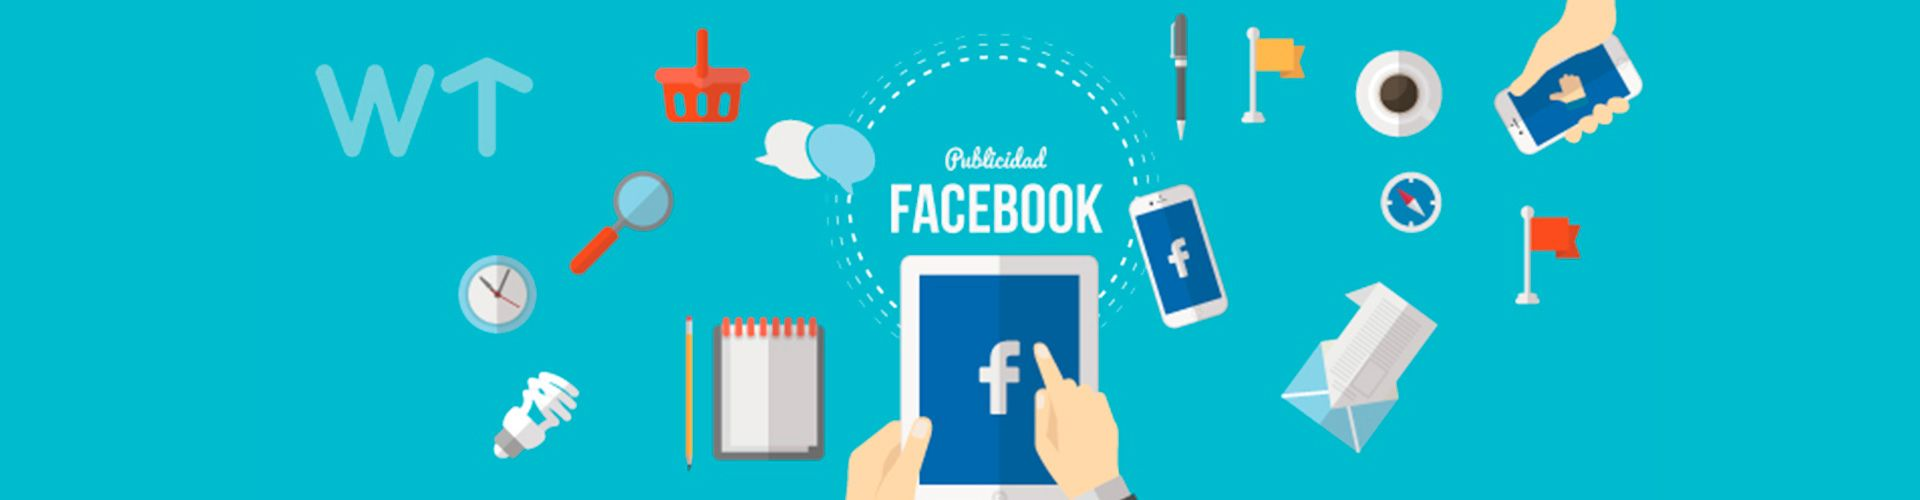 Banner of social media showing Facebook use.